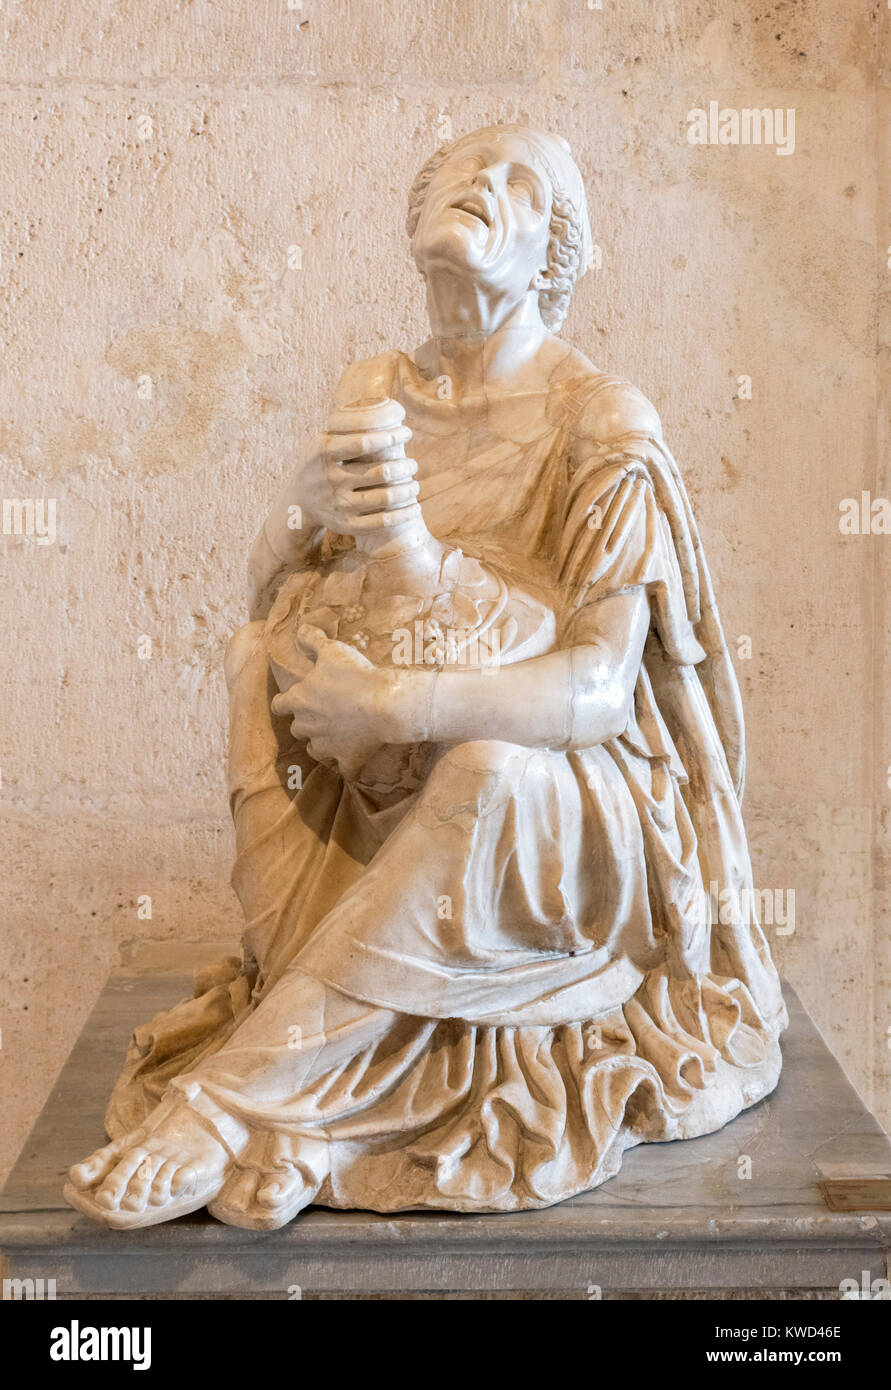 Sculpture of a Drunken Old Woman, dating from the 2nd century AD, Palazzo Nuovo, Capitoline Museums, Rome, Italy - Stock Image